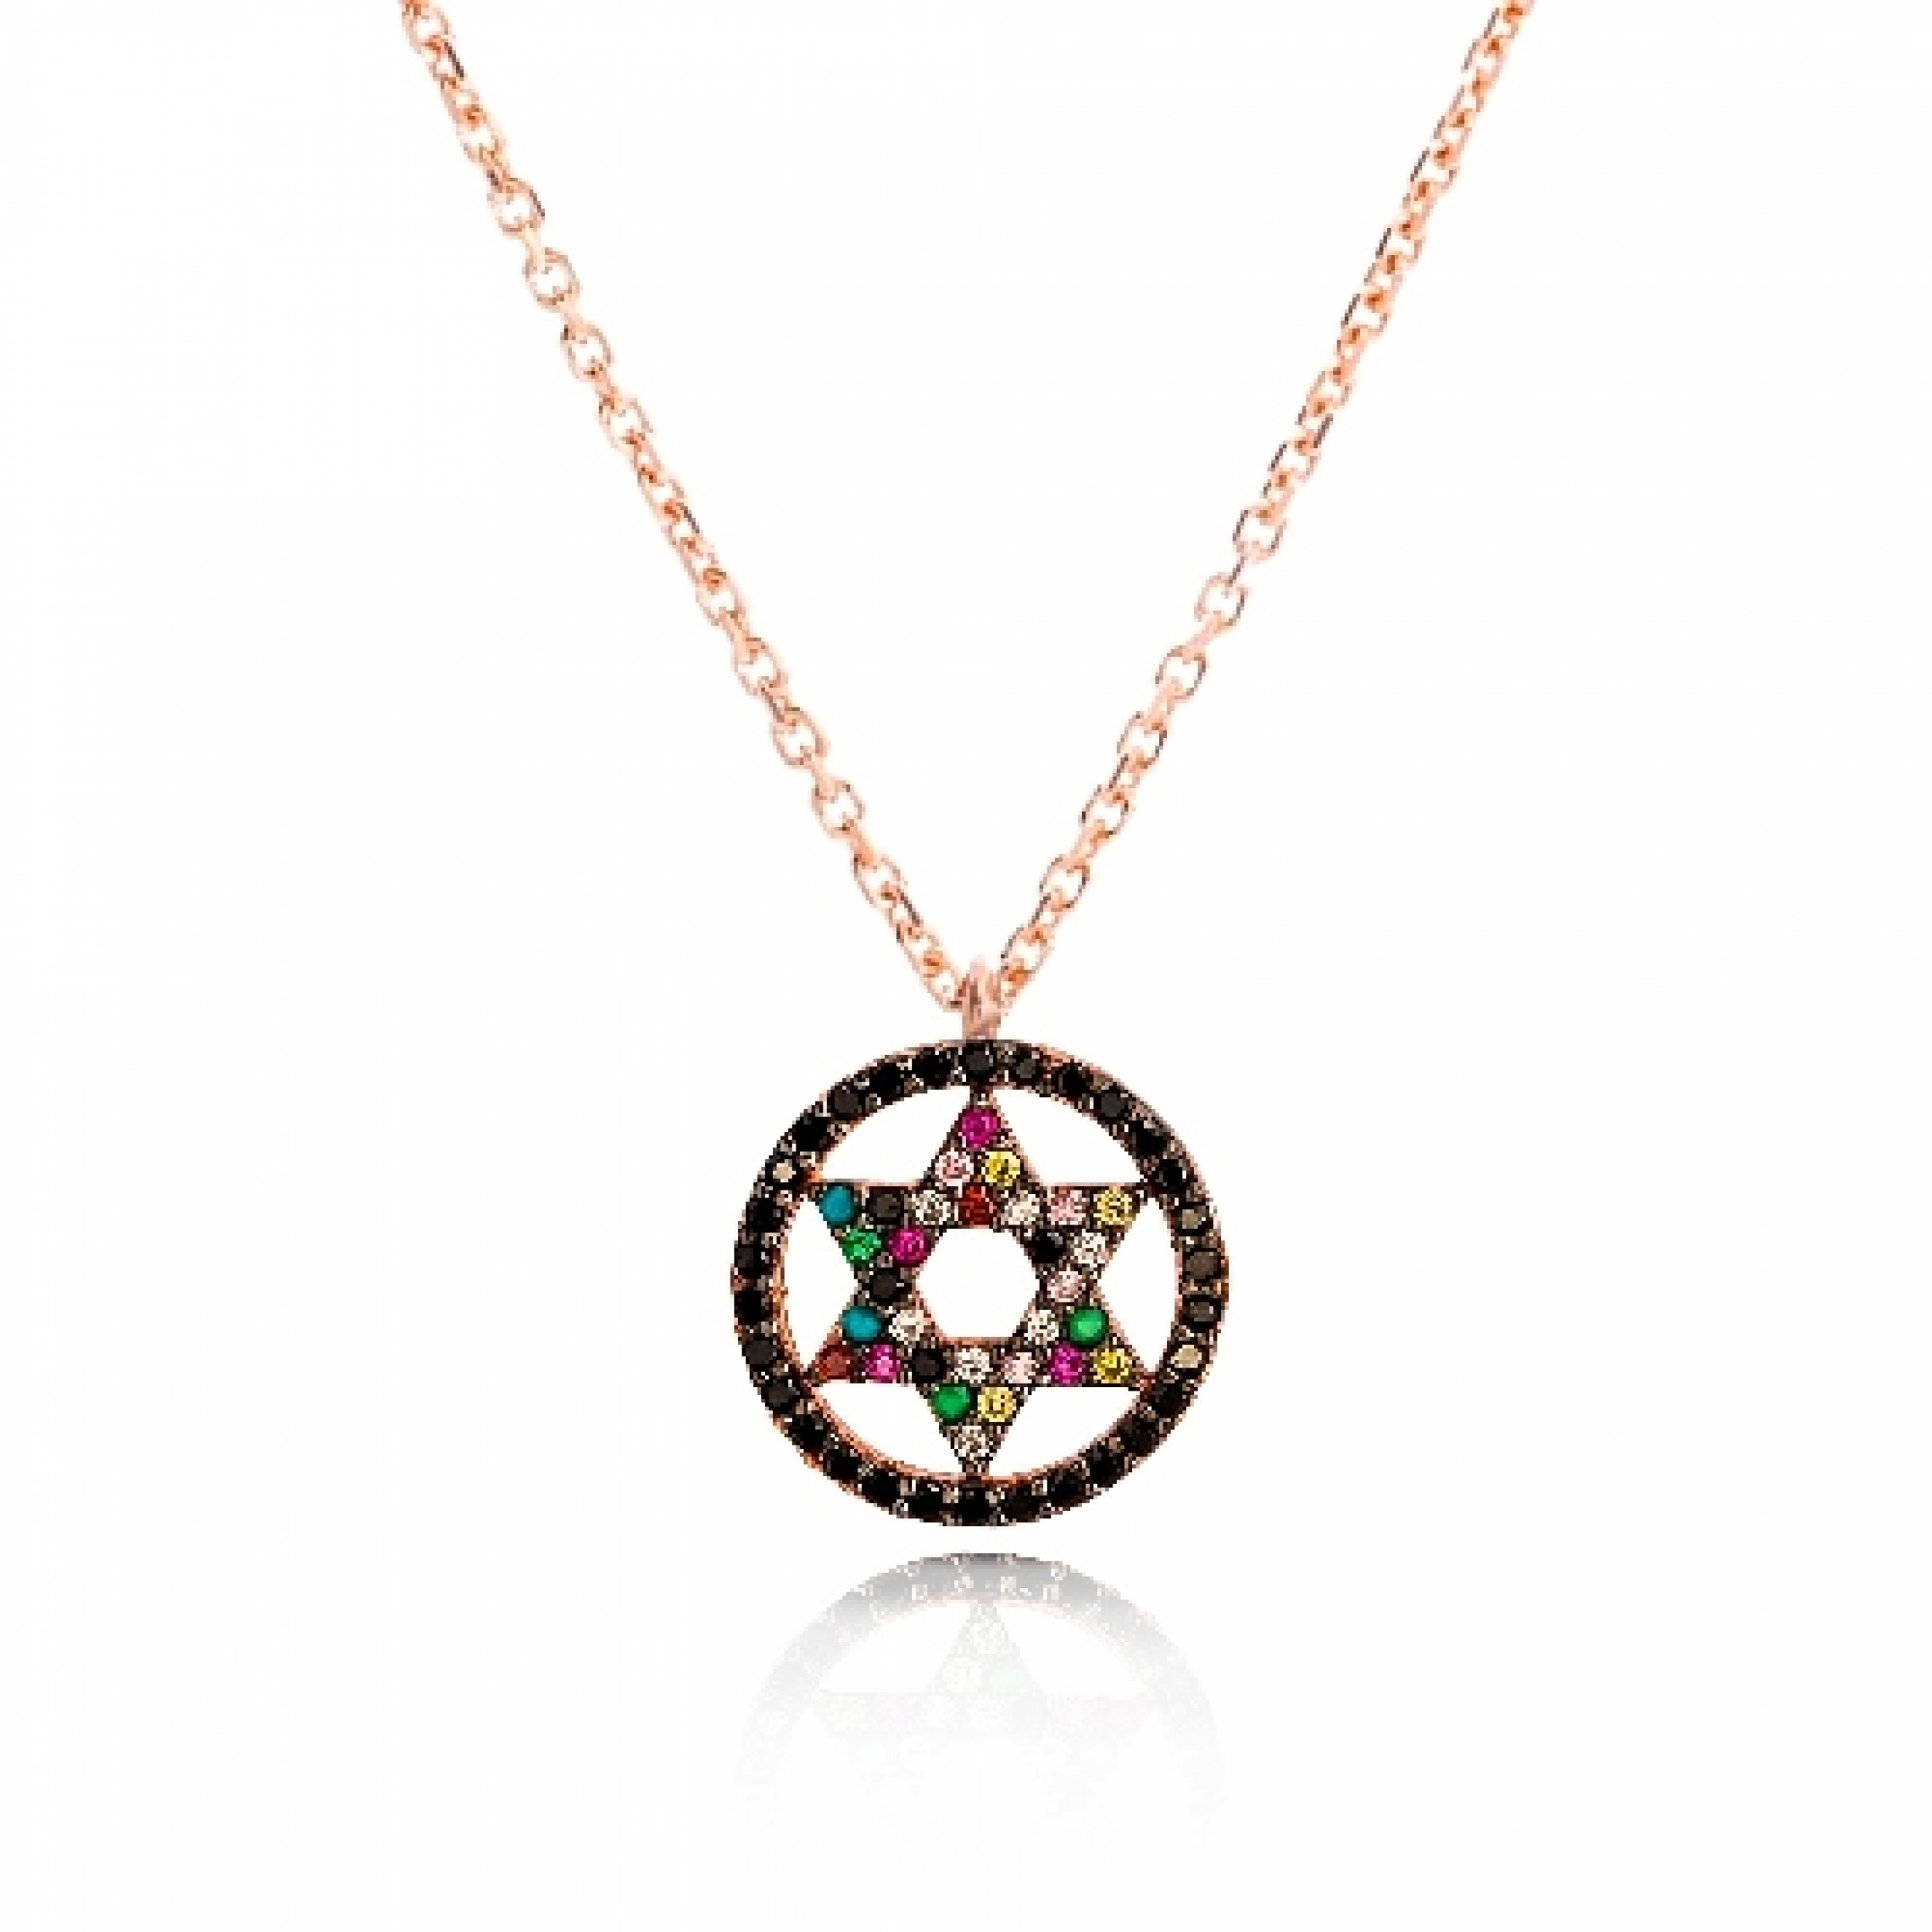 JN-190246 Evil Eye 925 Sterling Silver CZ Necklace Magen